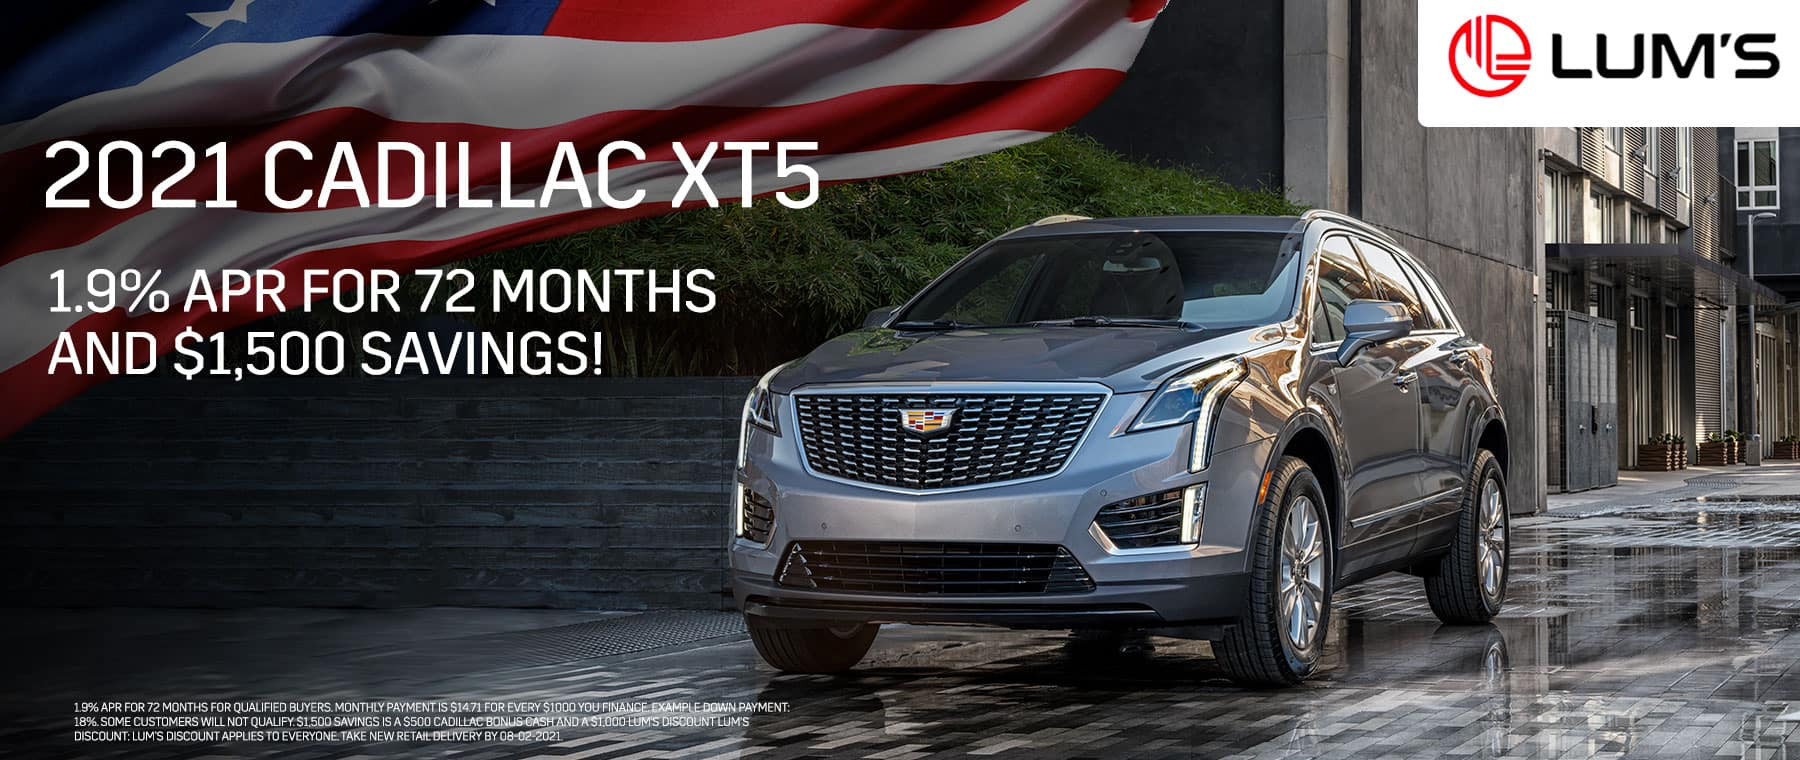 2021 Cadillac XT5 1.9% APR for 72 months and $1,500 Savings!